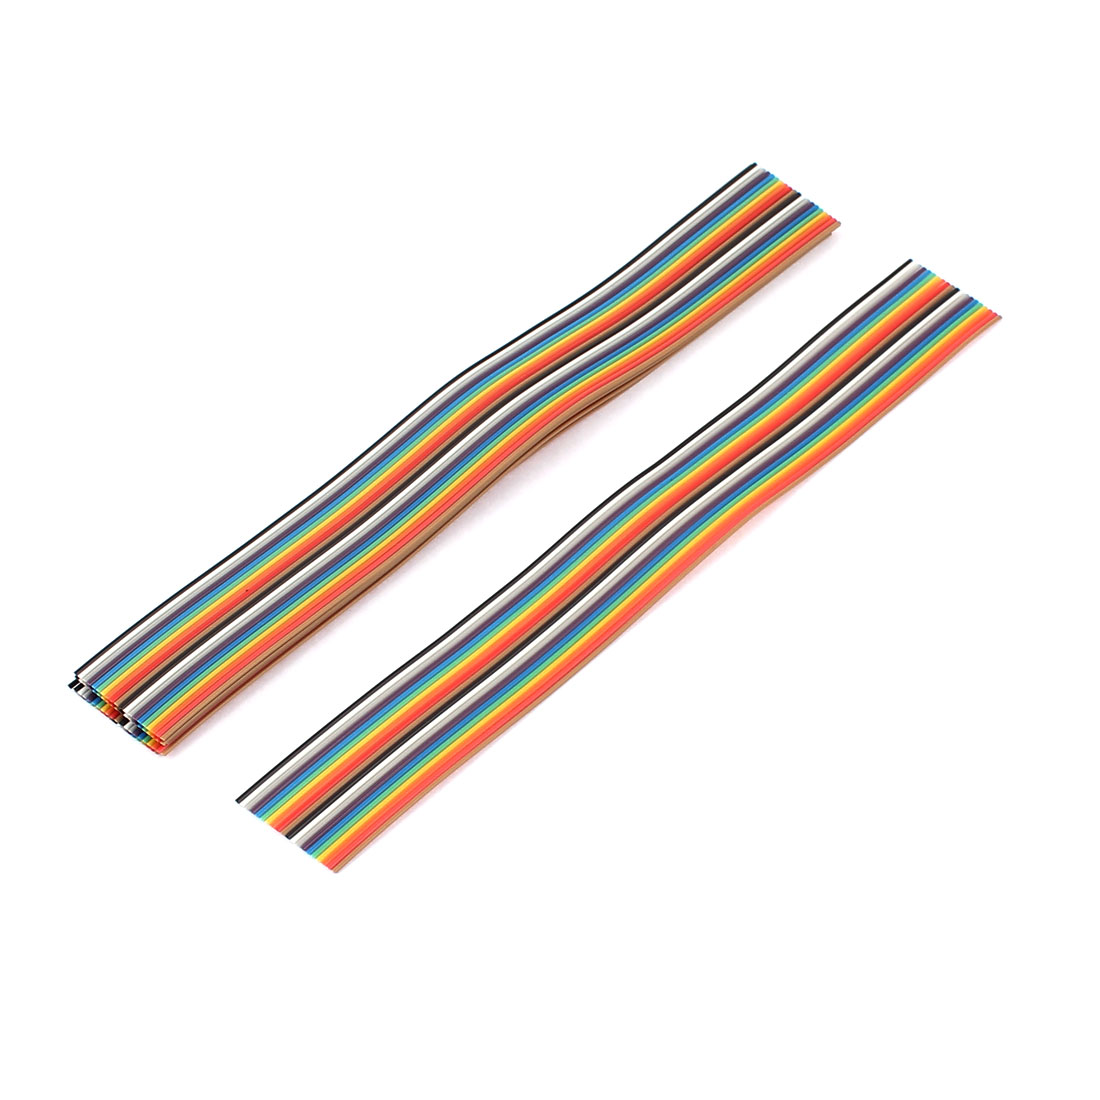 6 Pcs 200mm Long 20-Pin Rainbow Color Flat Ribbon Cable IDC Wire